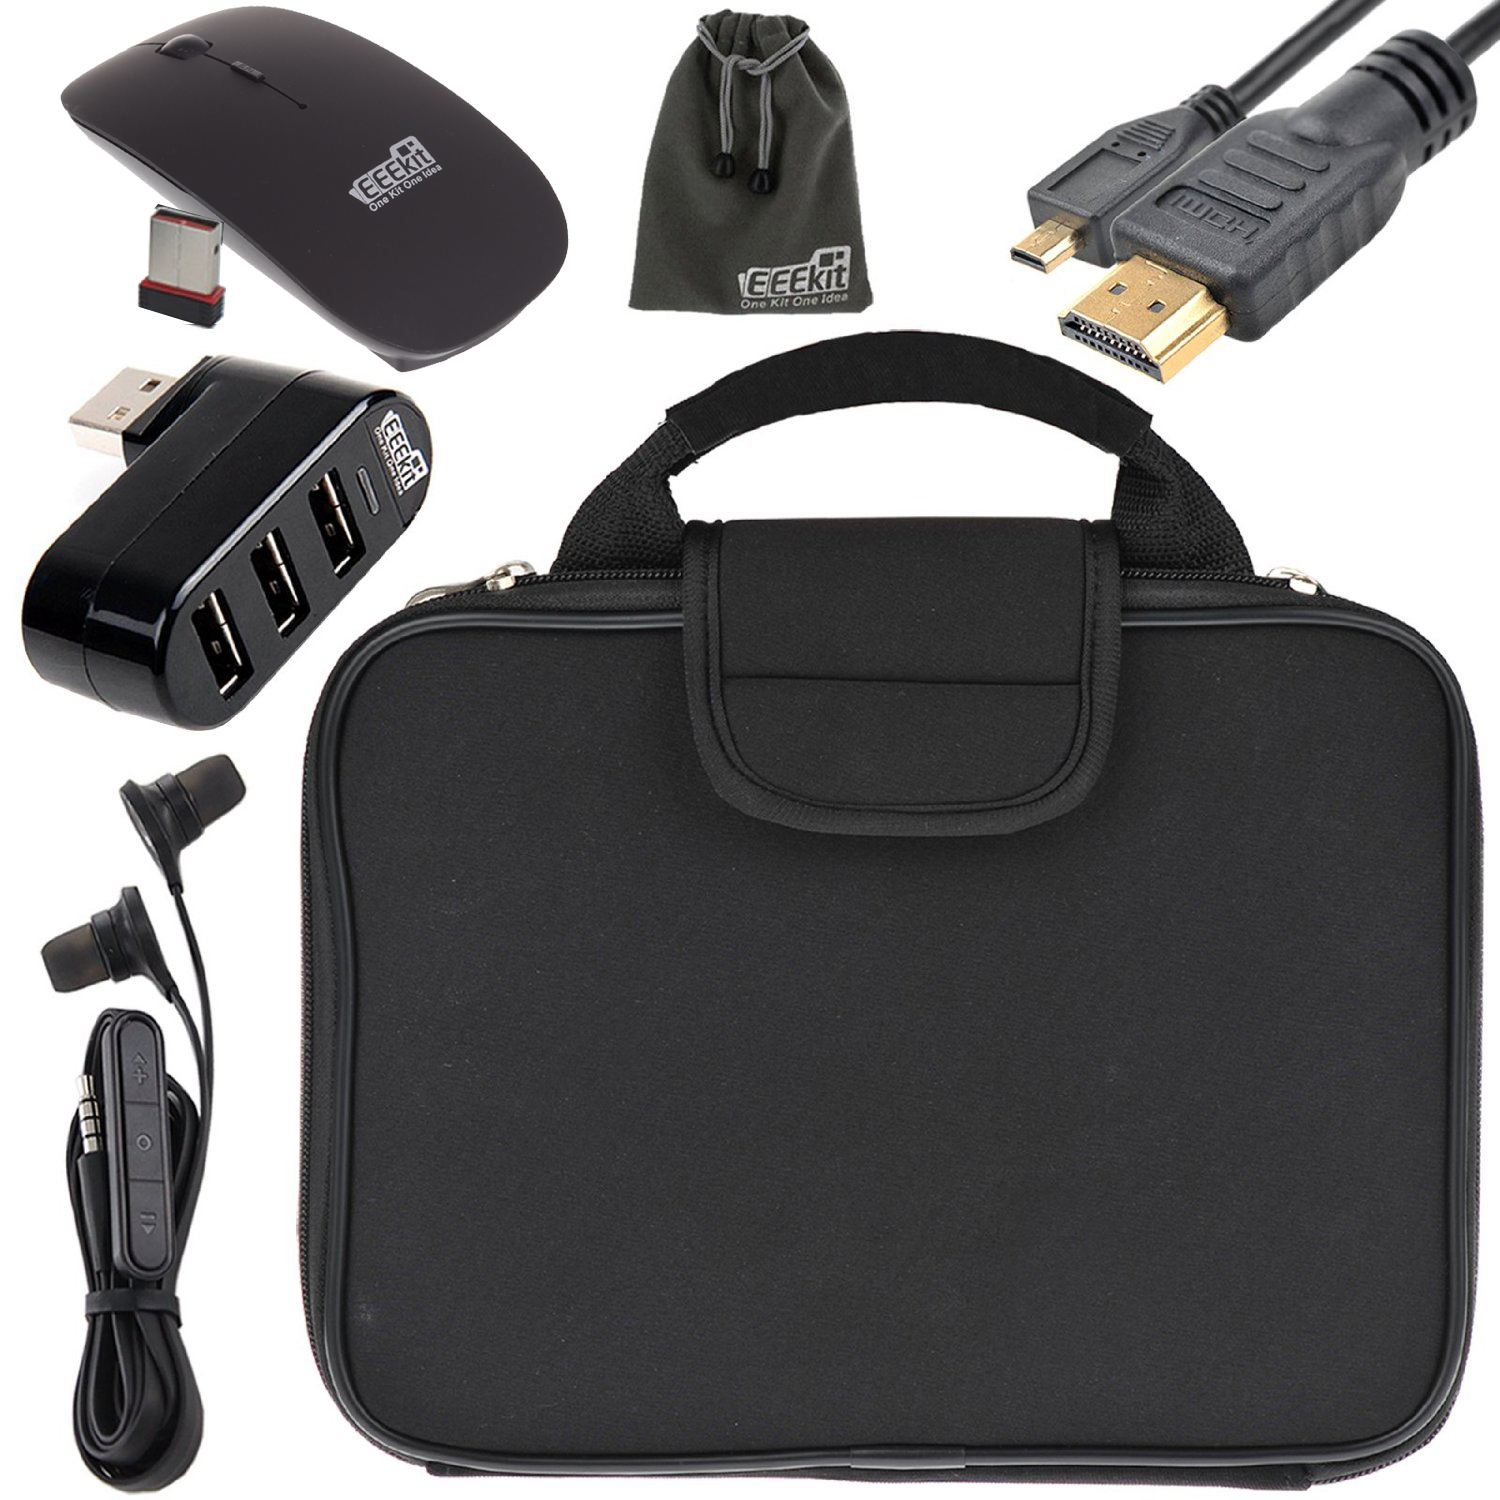 EEEKit Sleeve Case Carrying Bag+3 Port USB HUB+2.4G Wireless Mouse+Earphone+Mini HDMI to HDMI Cable for RCA Viking Pro 10.1 Tablet